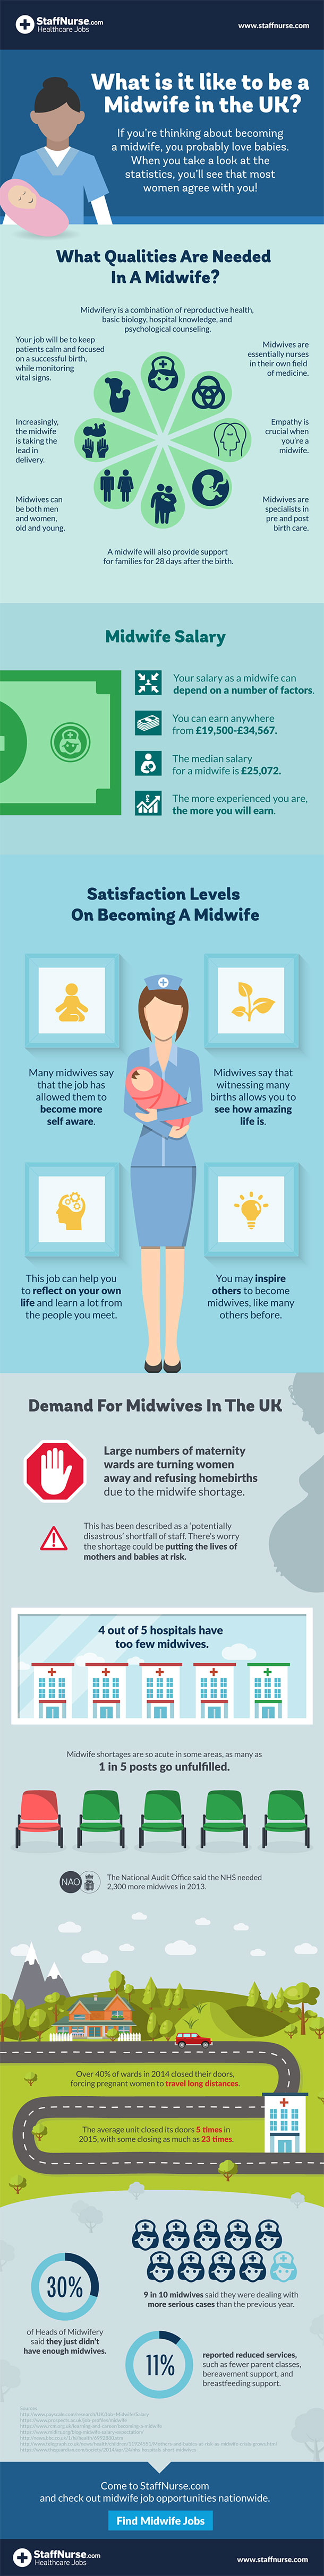 midwifery in the UK - infographic